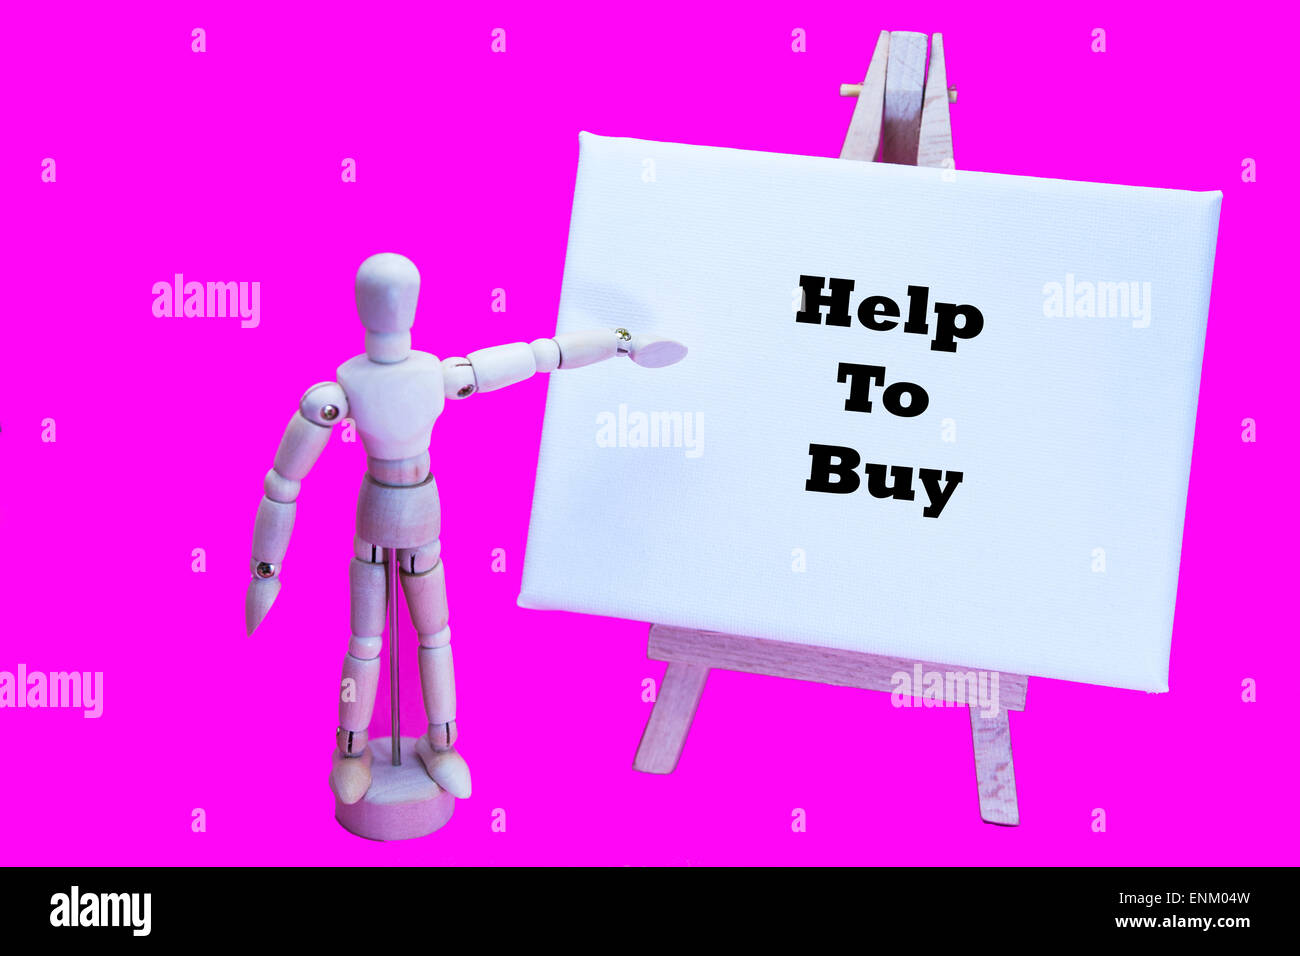 Wooden man with white board pointing at words 'Help To Buy' mortgage agreement government scheme low earners - Stock Image